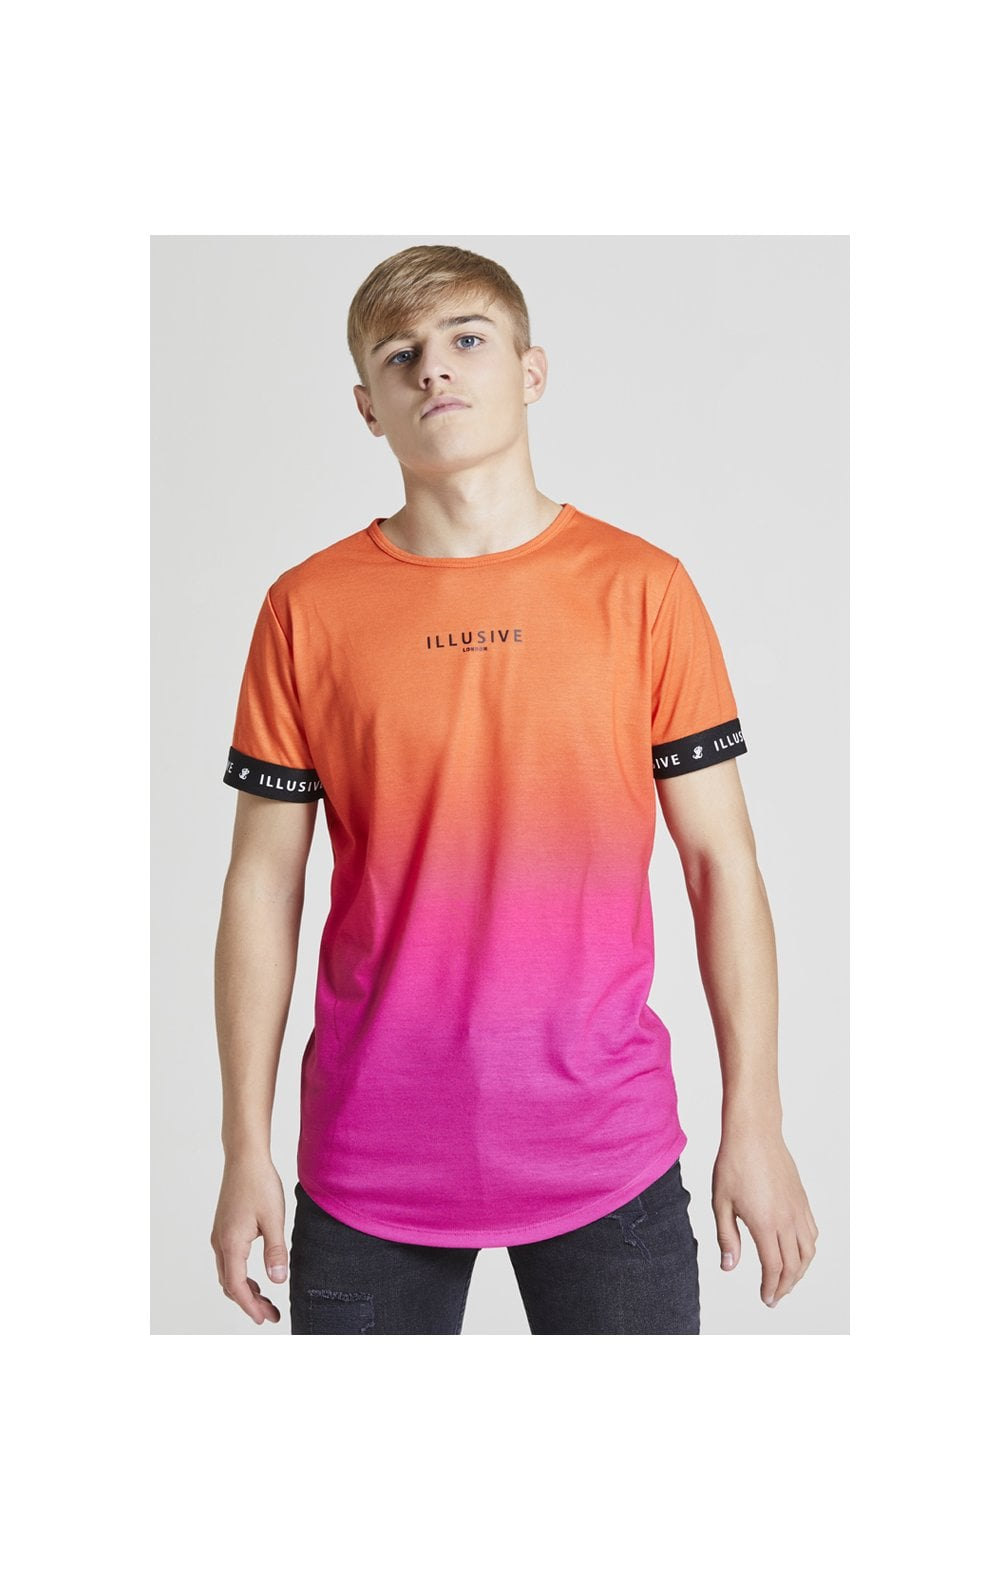 Illusive London Fade Tech Tee - Orange & Pink (1)